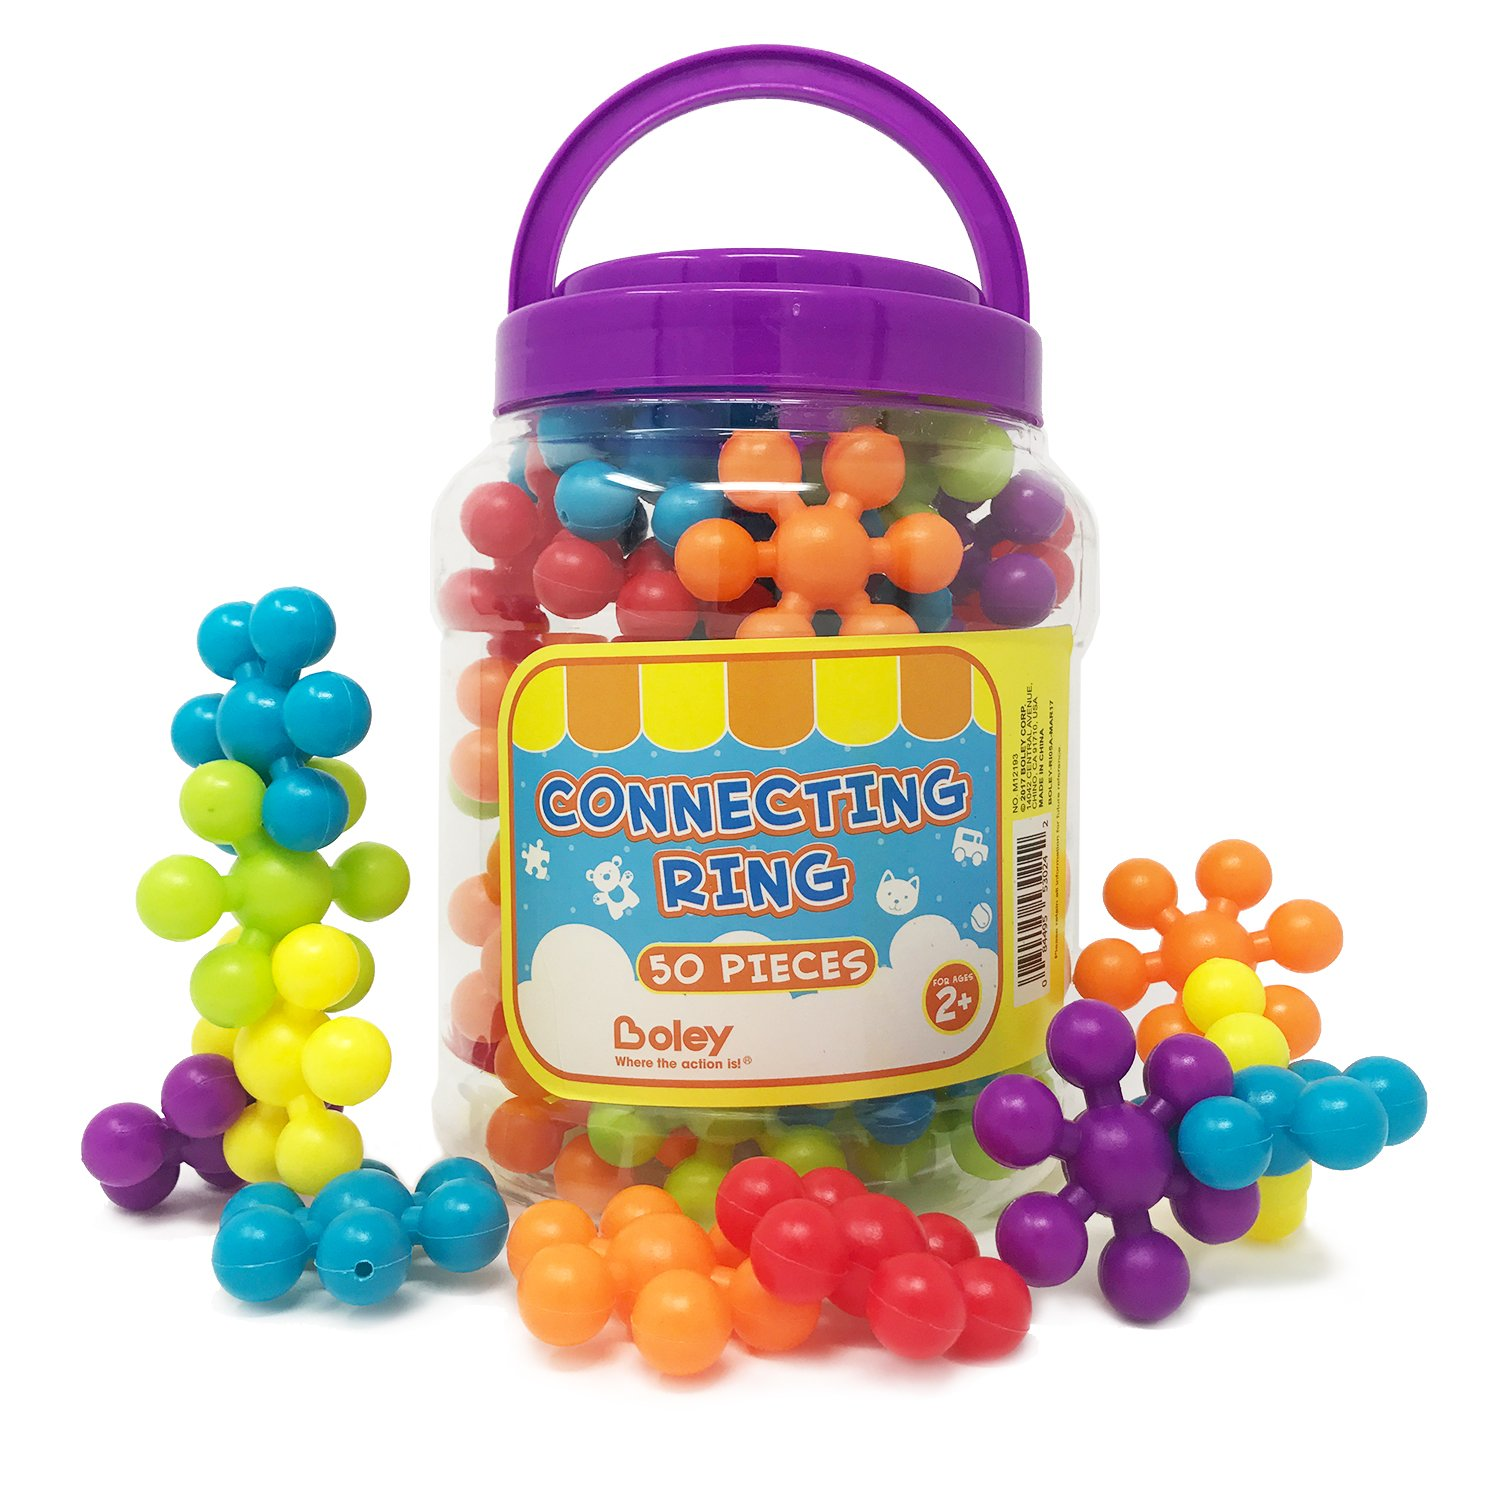 BOLEY 50-piece Educational Building Block Rings for Toddlers and Kids, Builder set comes with vibrant pieces and an easy storage bucket! Review